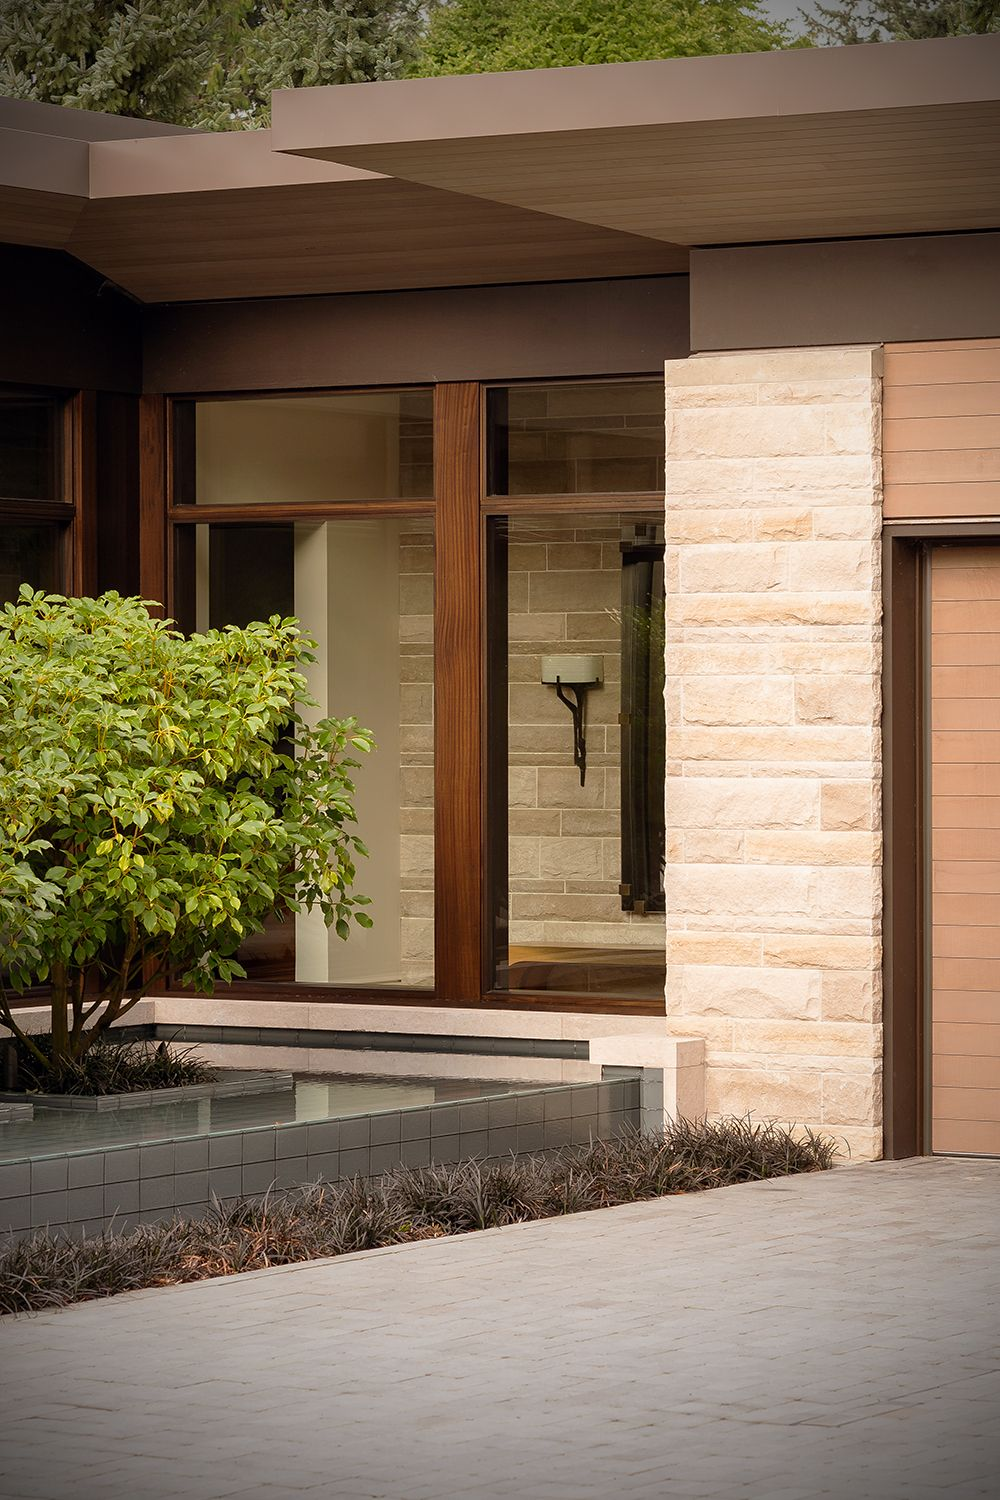 Veneer Stone Home Patio Paver Driveway Landscaping Front Door Entrance Stone Houses Rustic Exterior Building Stone